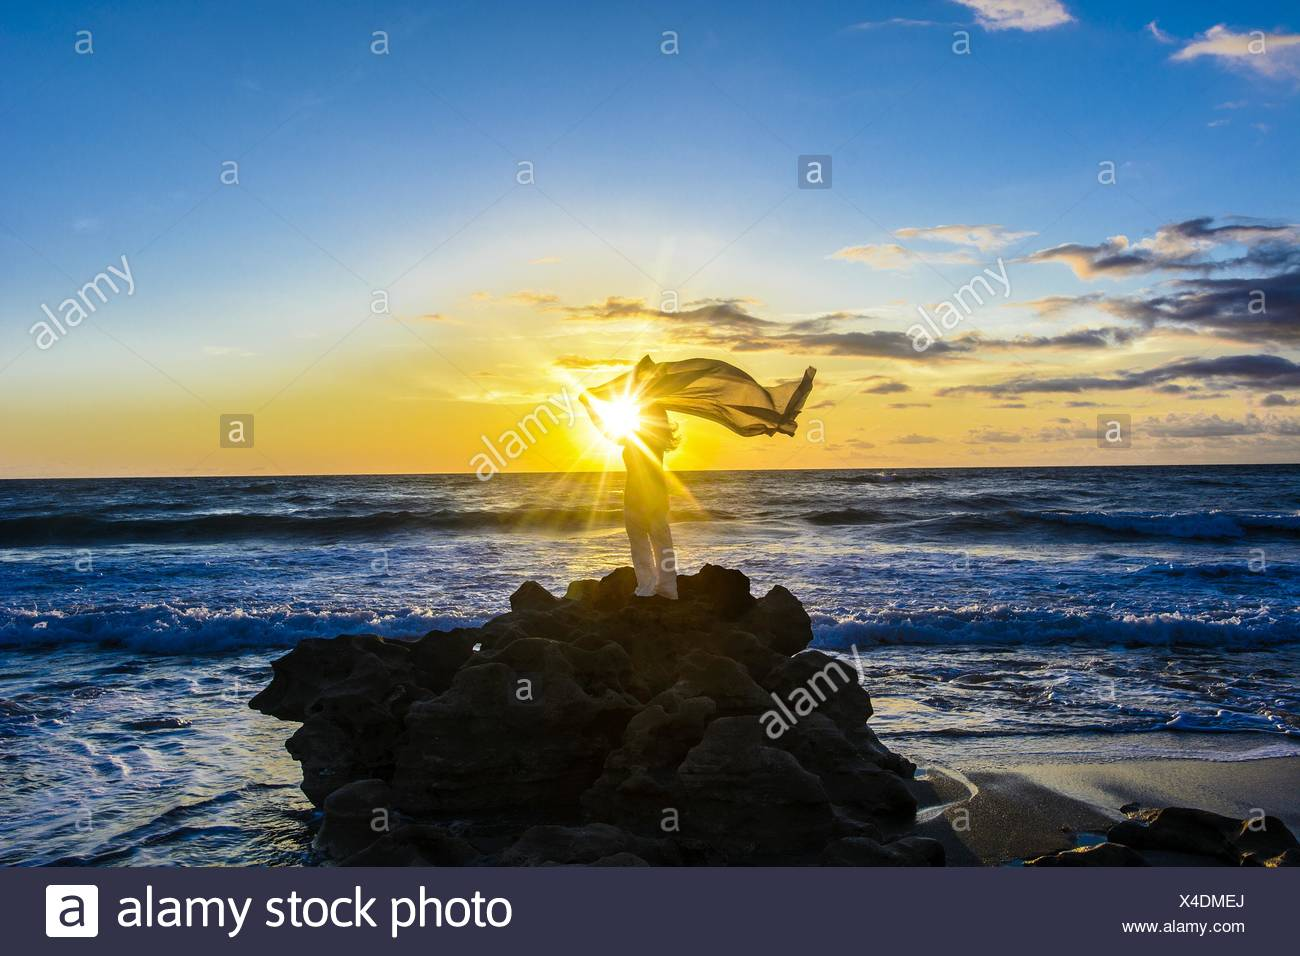 Woman With Sarong Blowing By Wind Standing On Rock In Sea Against Sky Stock Photo